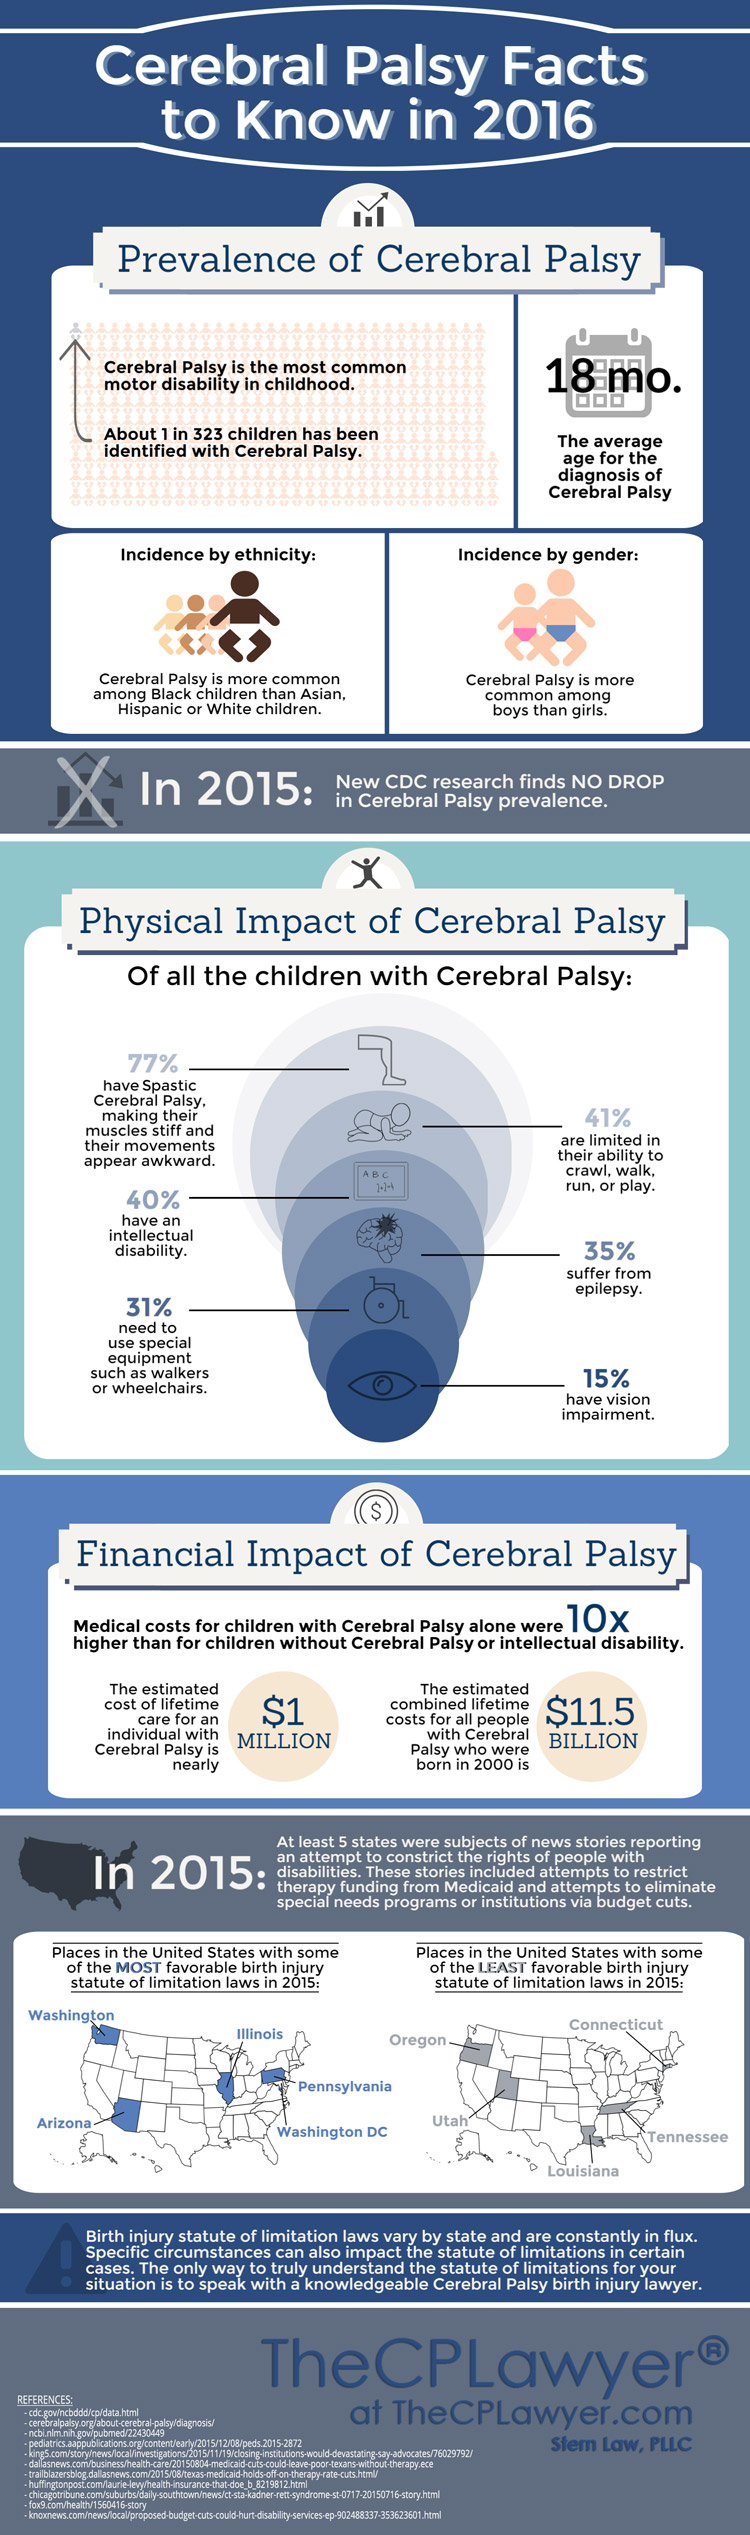 cerbral palsy infographic